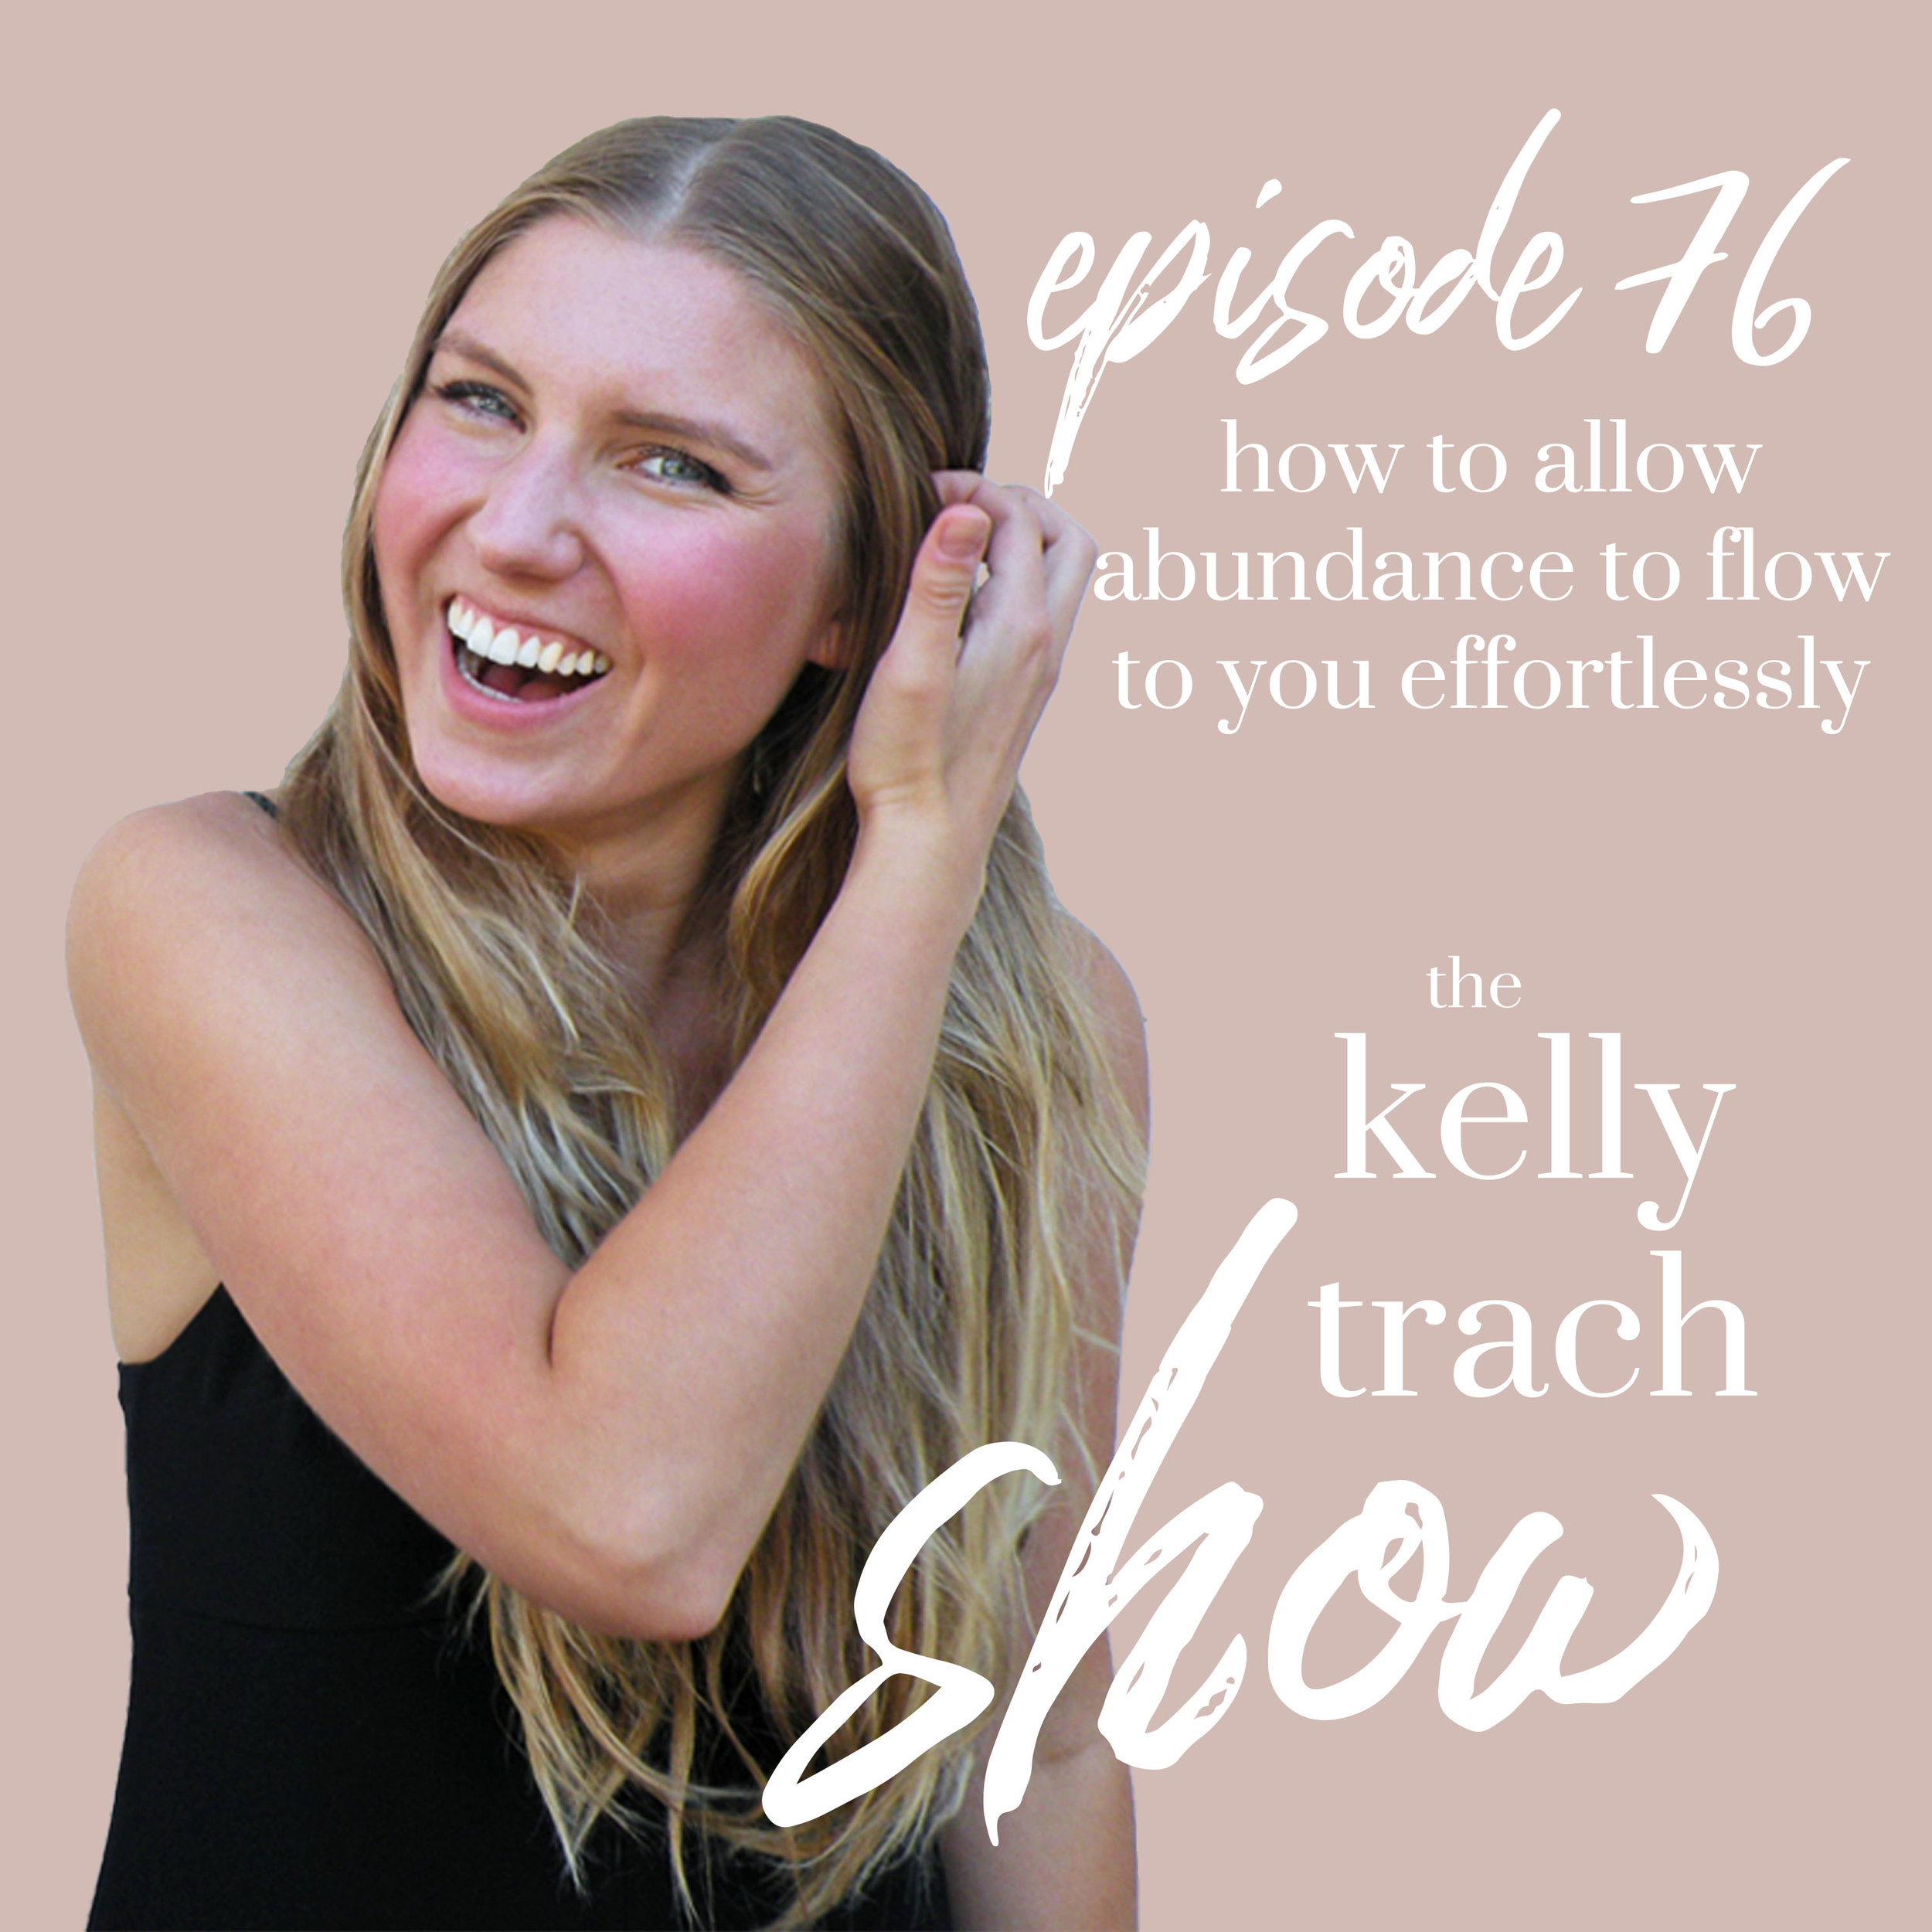 76 - How to Allow Abundance to Flow Effortlessly - The Kelly Trach Show Podcast.jpg